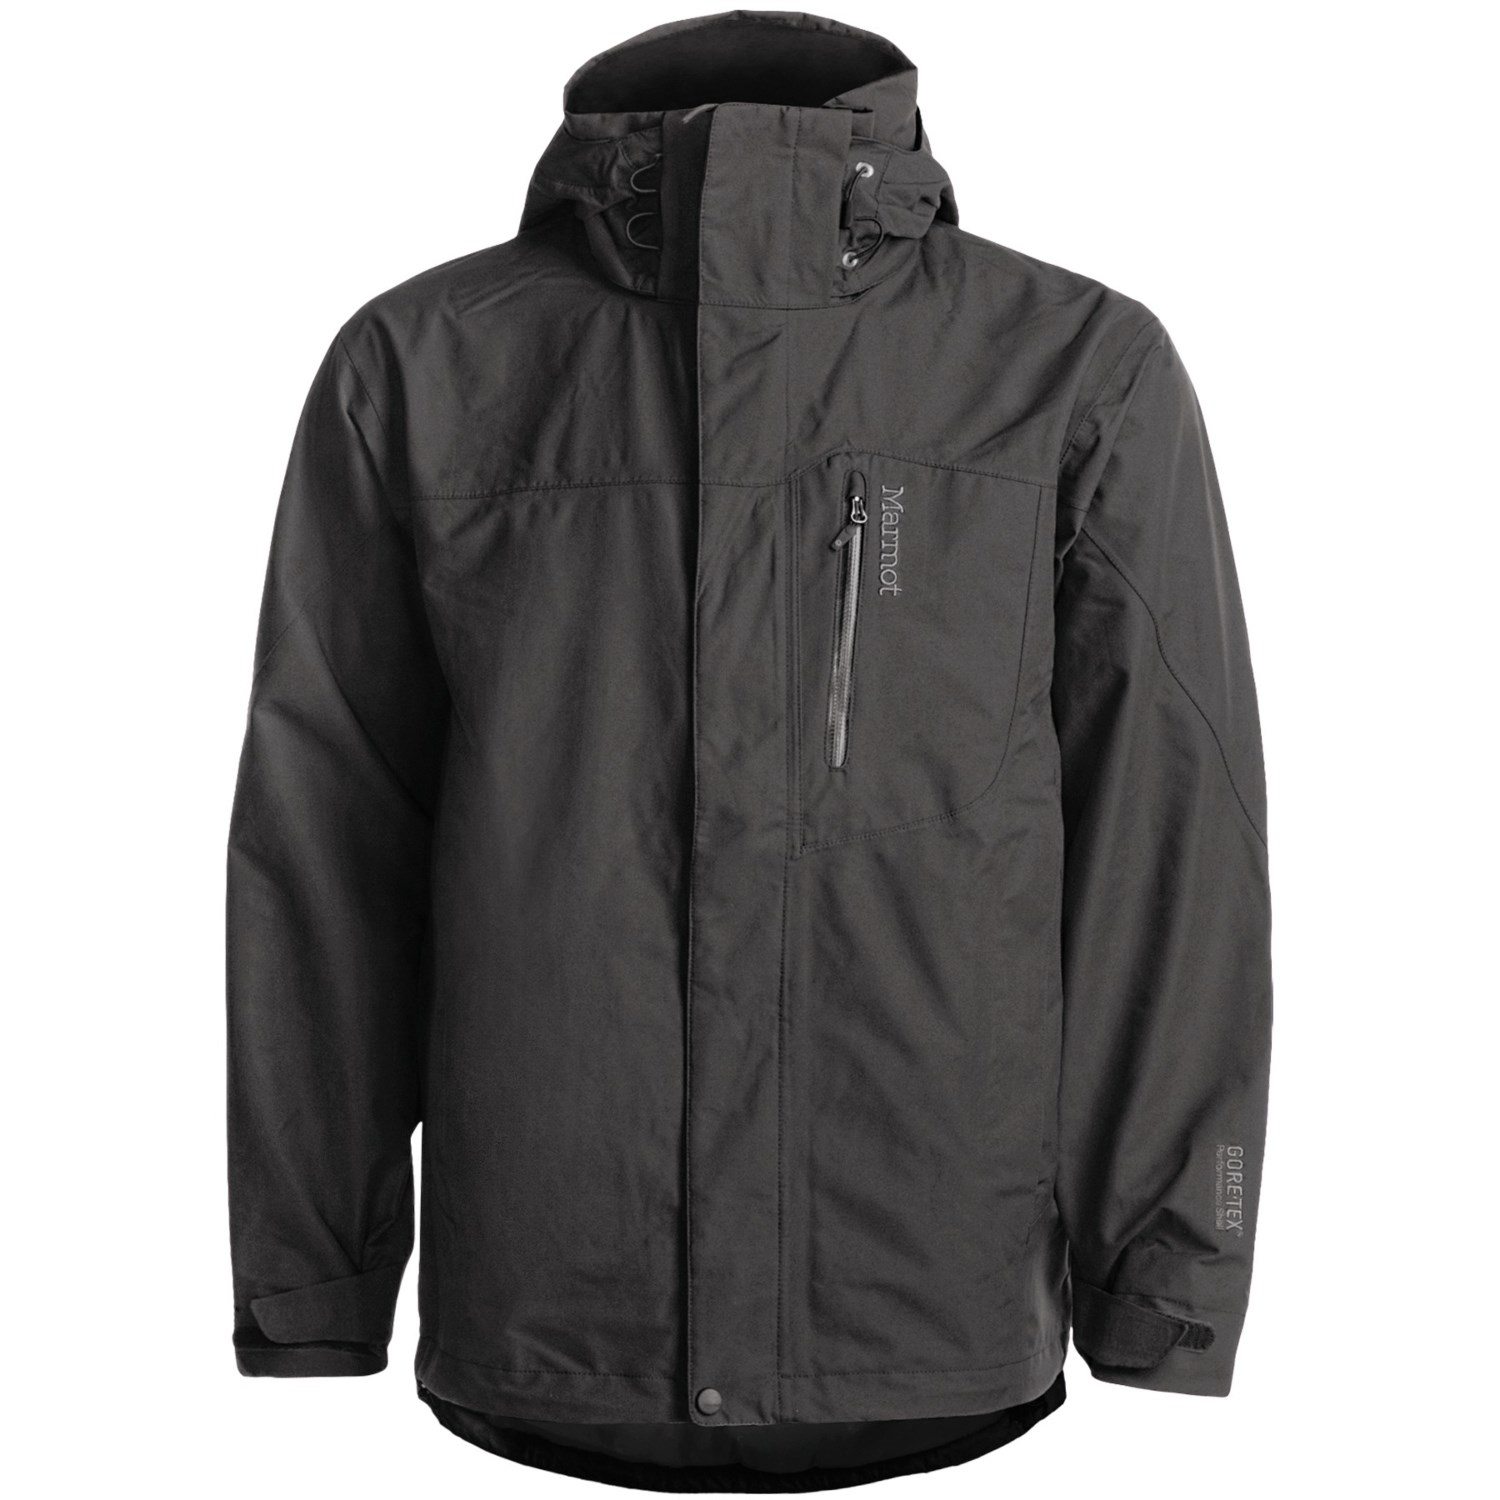 Marmot Cornice Gore Tex 174 Jacket Waterproof For Men